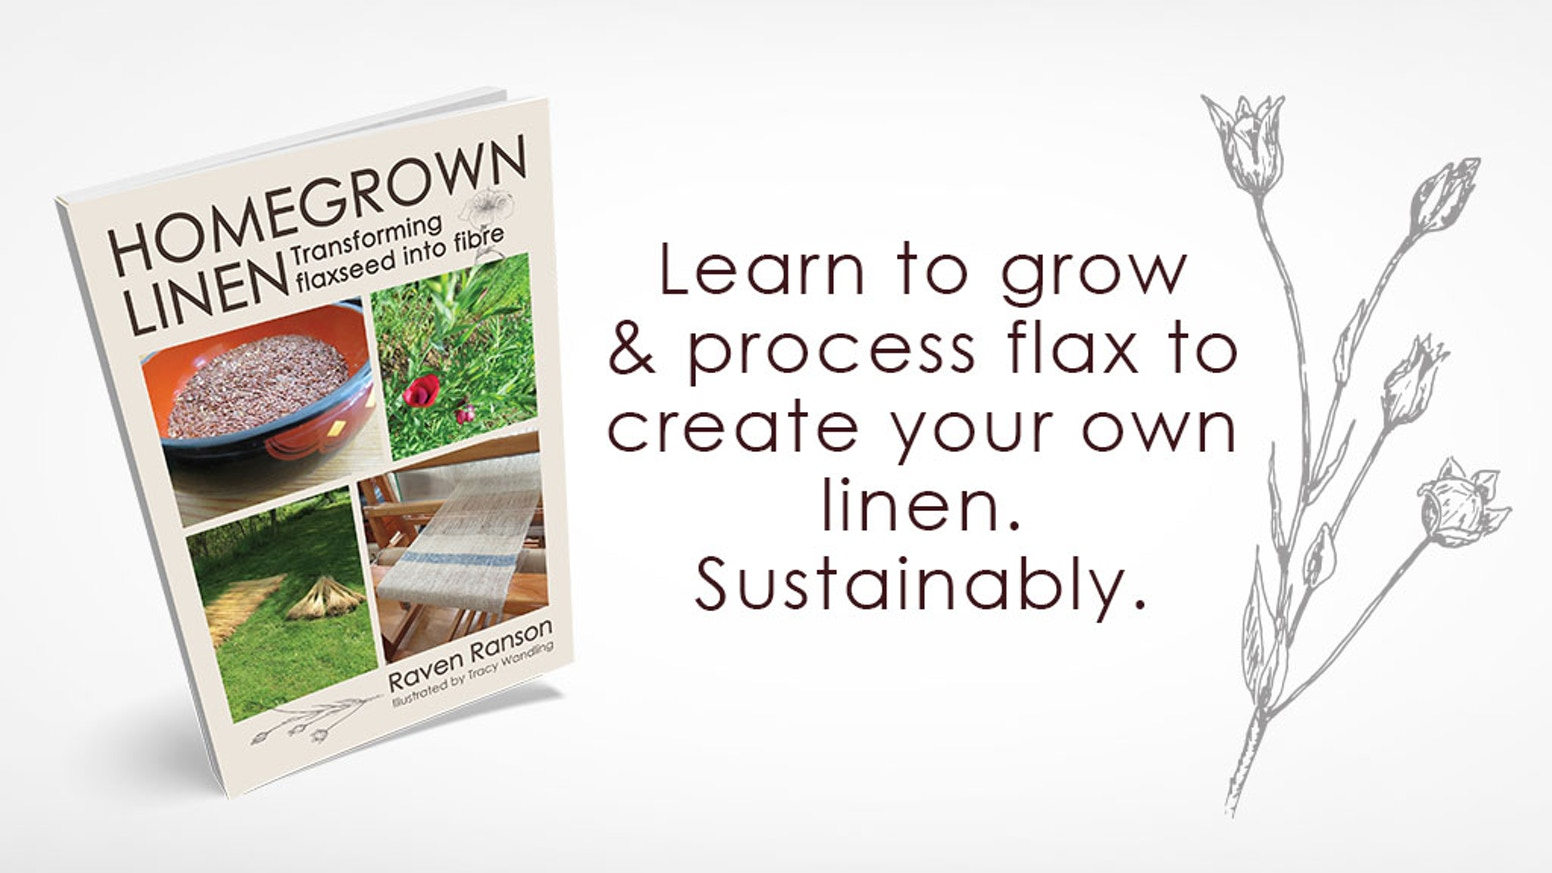 Grow your very own linen yarn, sustainably and organically. A book for homesteaders and yarn lovers.